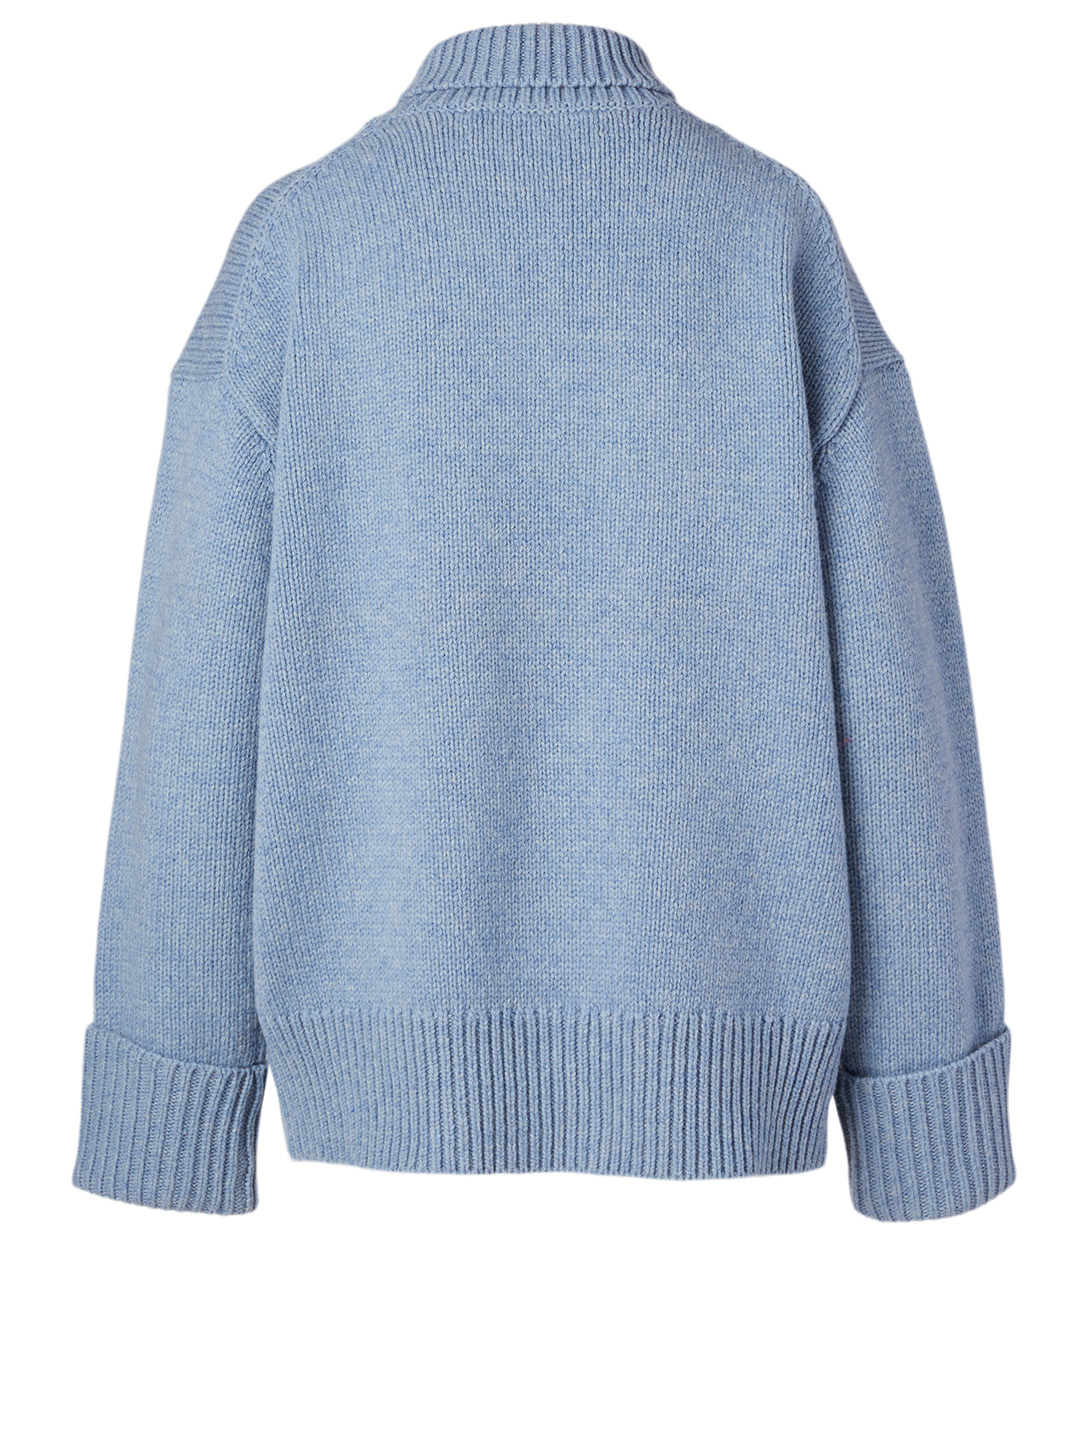 VICTORIA VICTORIA BECKHAM Wool Turtleneck Sweater Women's Blue